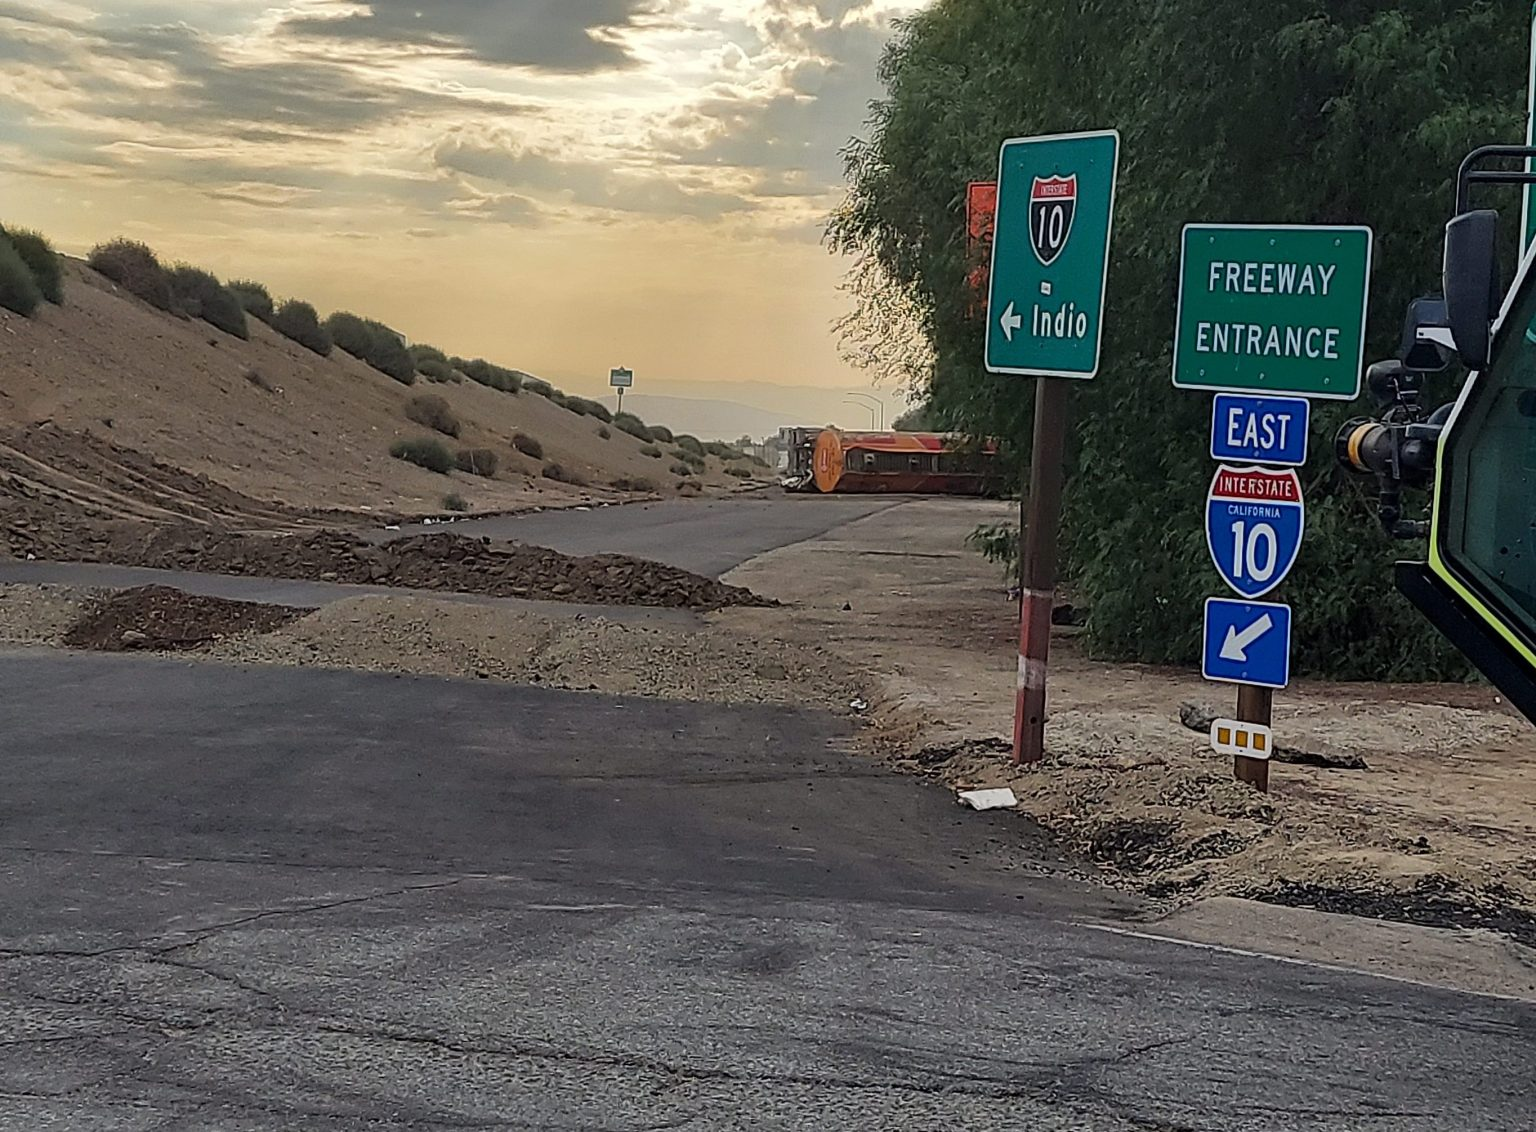 Interstate 10 Fuel Spill Cleanup To Take Two Weeks